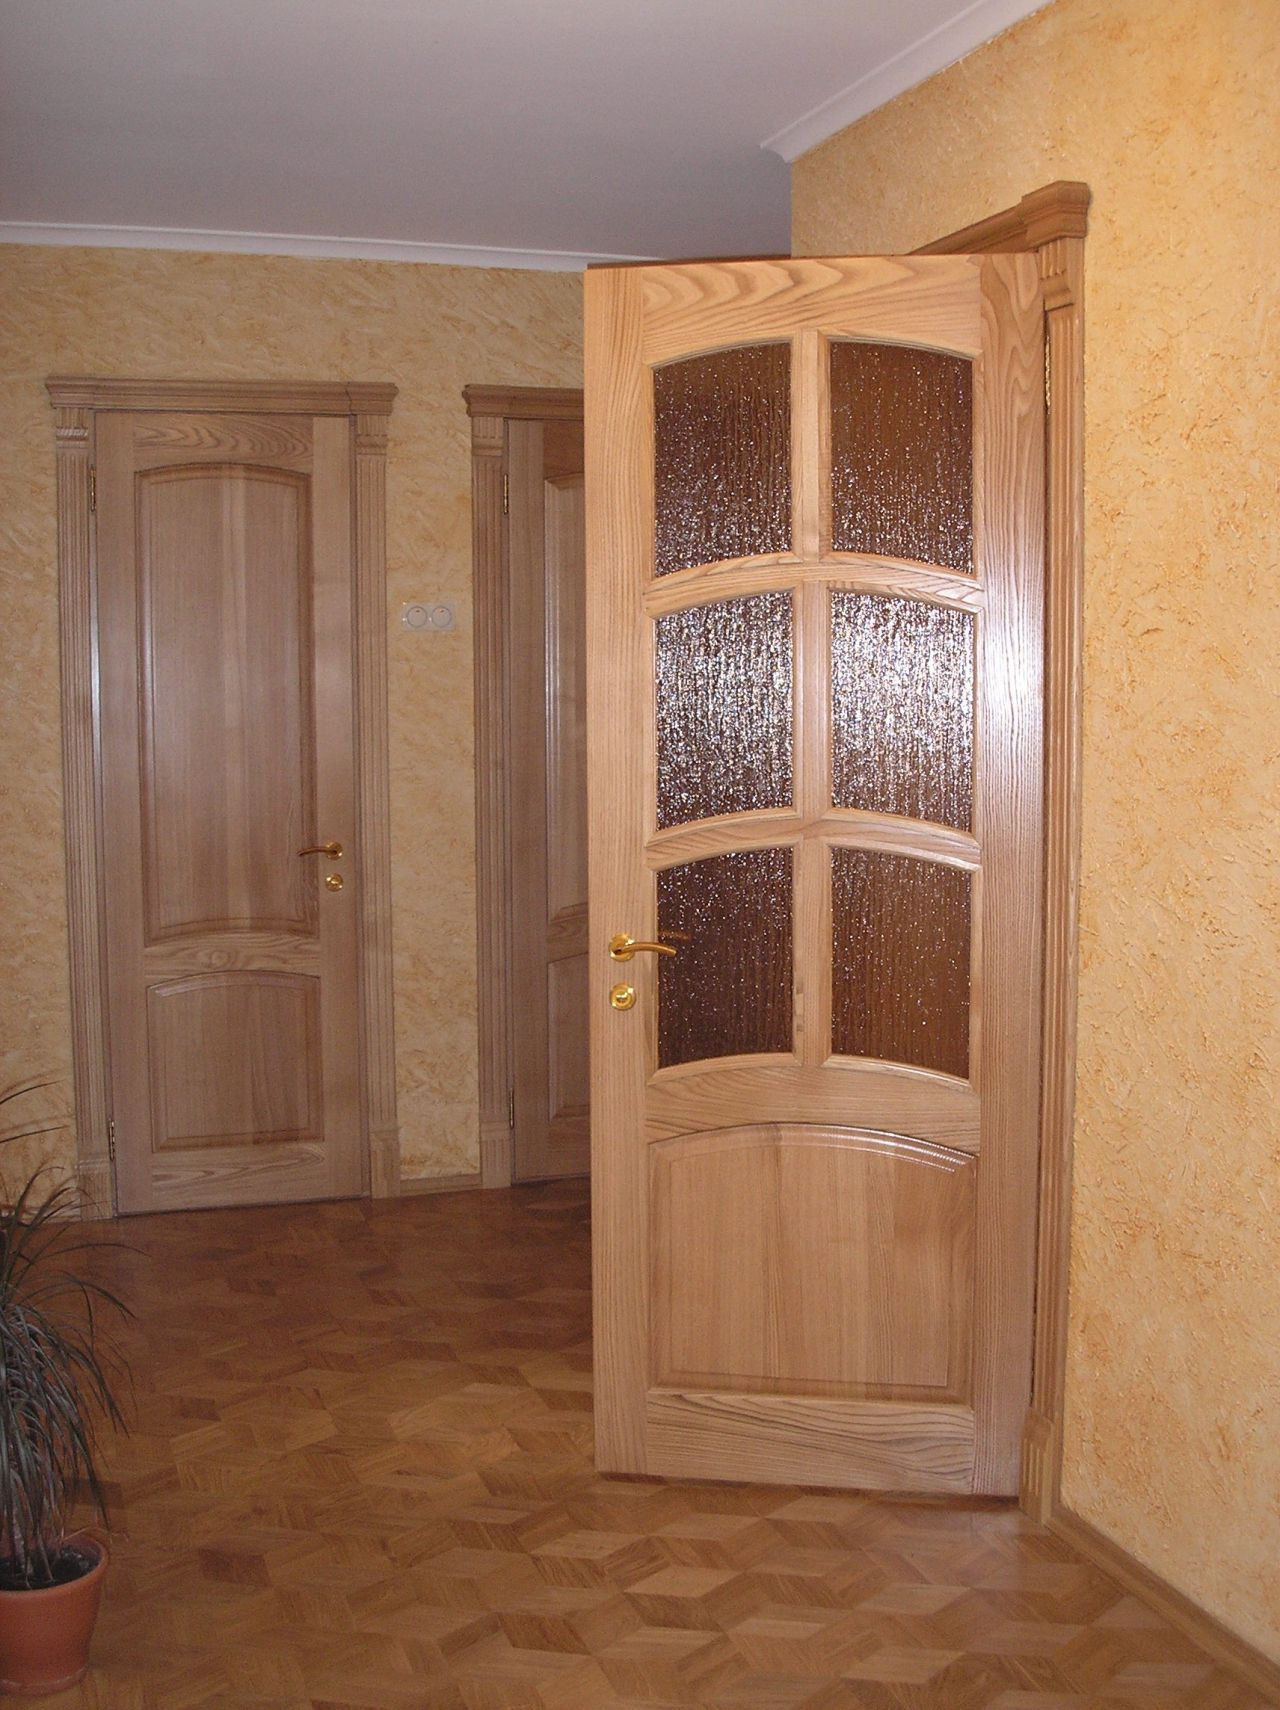 The wooden door lacquered